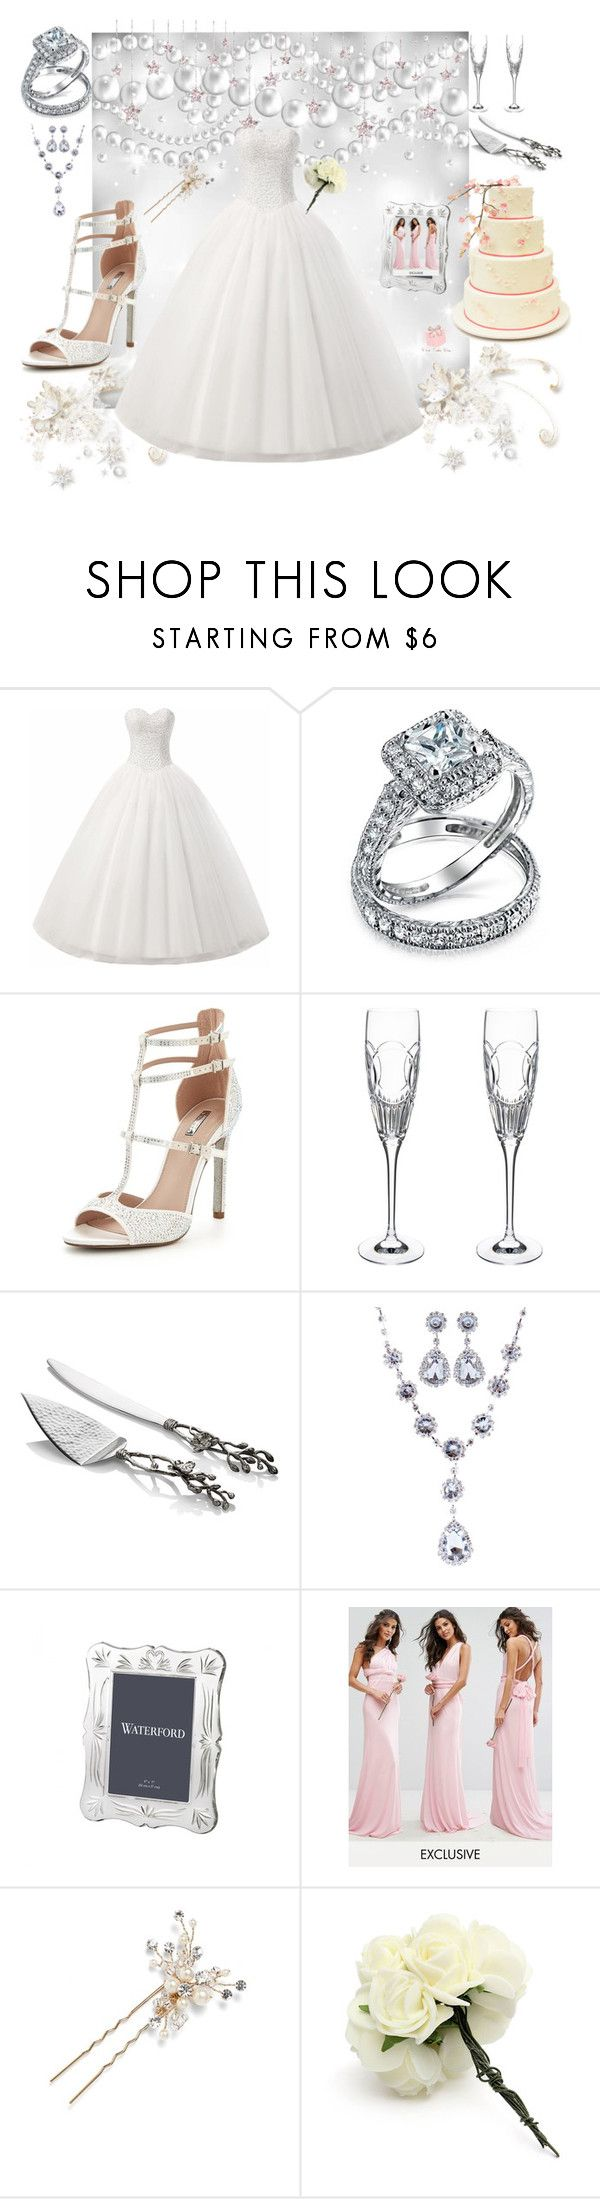 """WINTER WEDDING DREAMS"" by rebeccadavisblogger ❤ liked on Polyvore featuring Bling Jewelry, Carvela, Waterford, Michael Aram, TFNC and Wedding Belles New York"